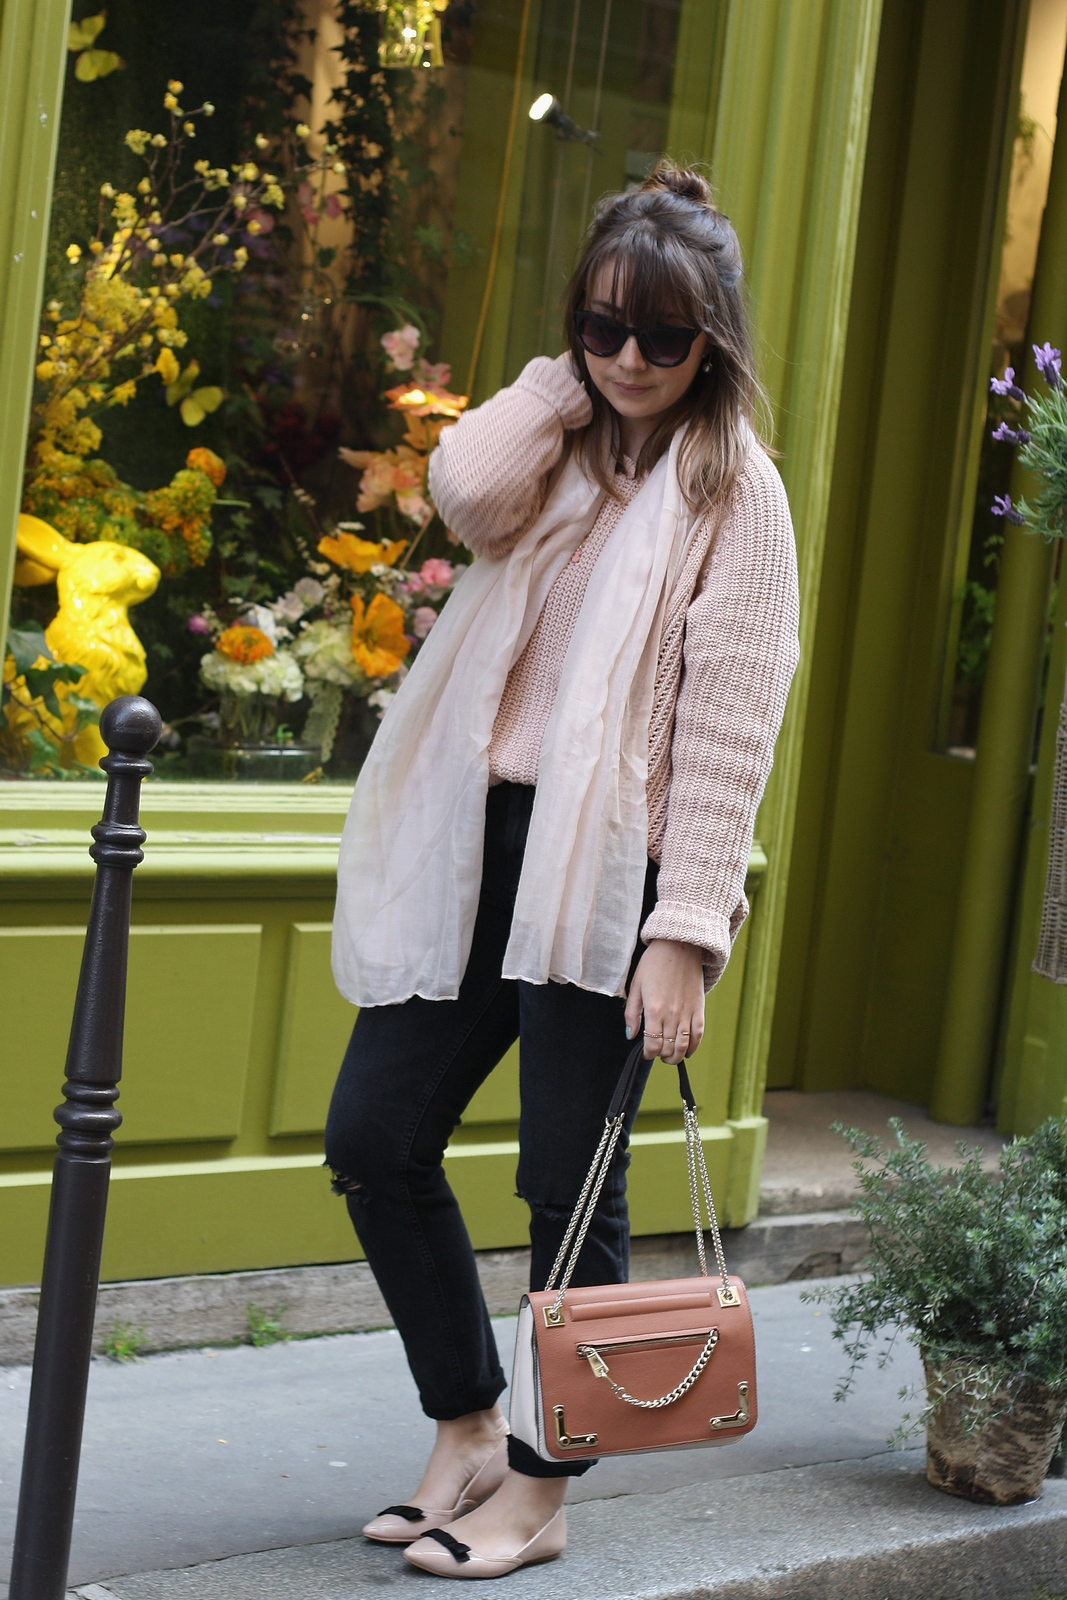 Blog mode femme Paris - Du style, Madame - Streetstyle - look - nude